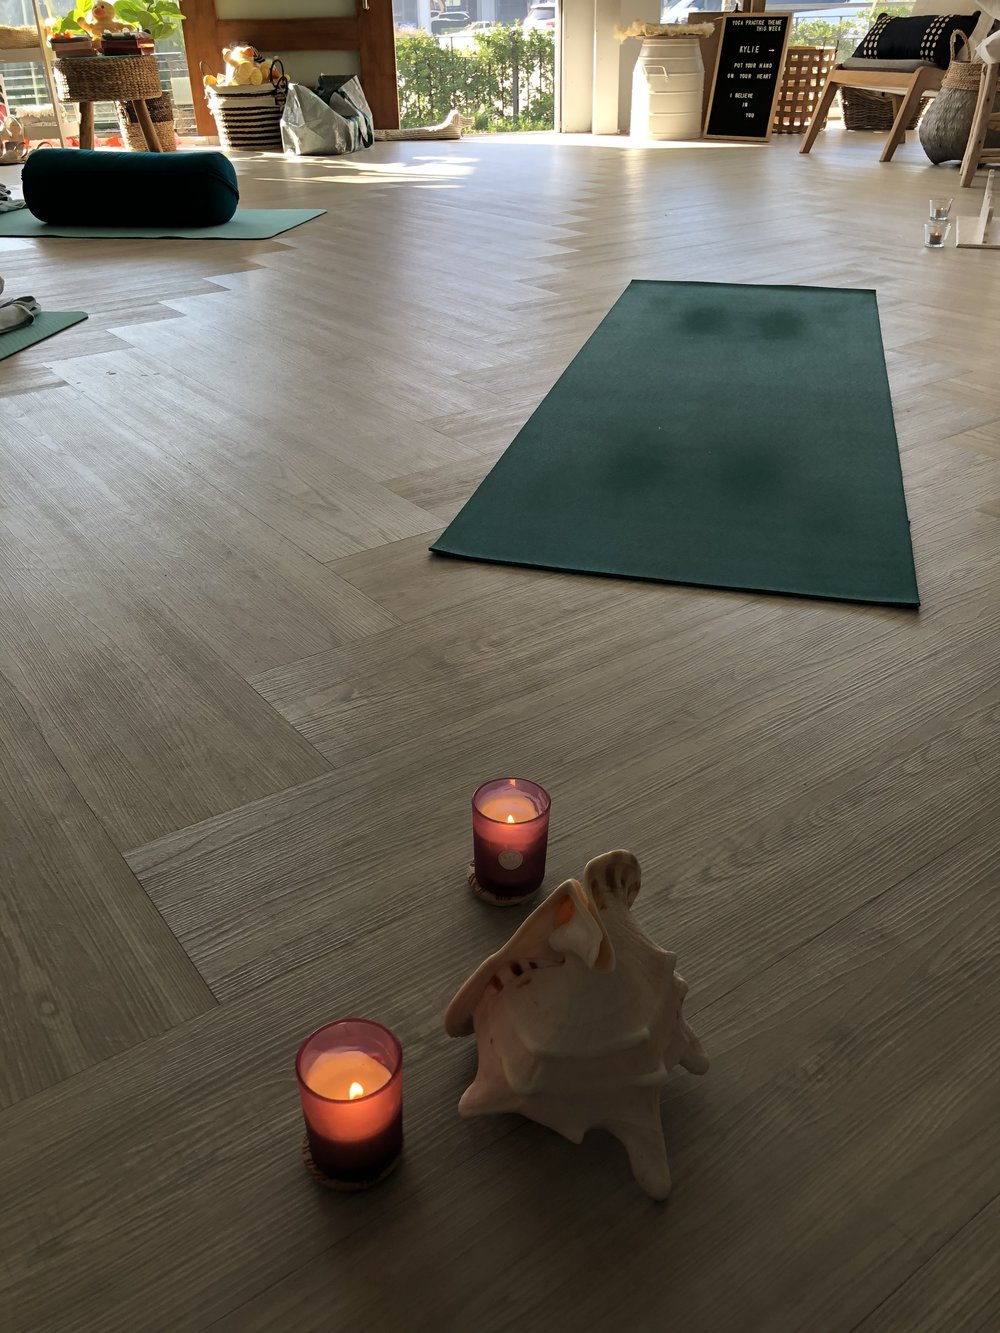 Join us on Tuesday mornings at 9.15am for a purely Yin Yoga Practice at Lotus Bay Yoga 1403 Anzac Pde Little Bay, at Driftwood Living Homewares store, on the roundabout in the heart of Little Bay. Jump over to the website to check our timetable or to pre-book class, dropins on the day are welcome  www.lotusbayyoga.com